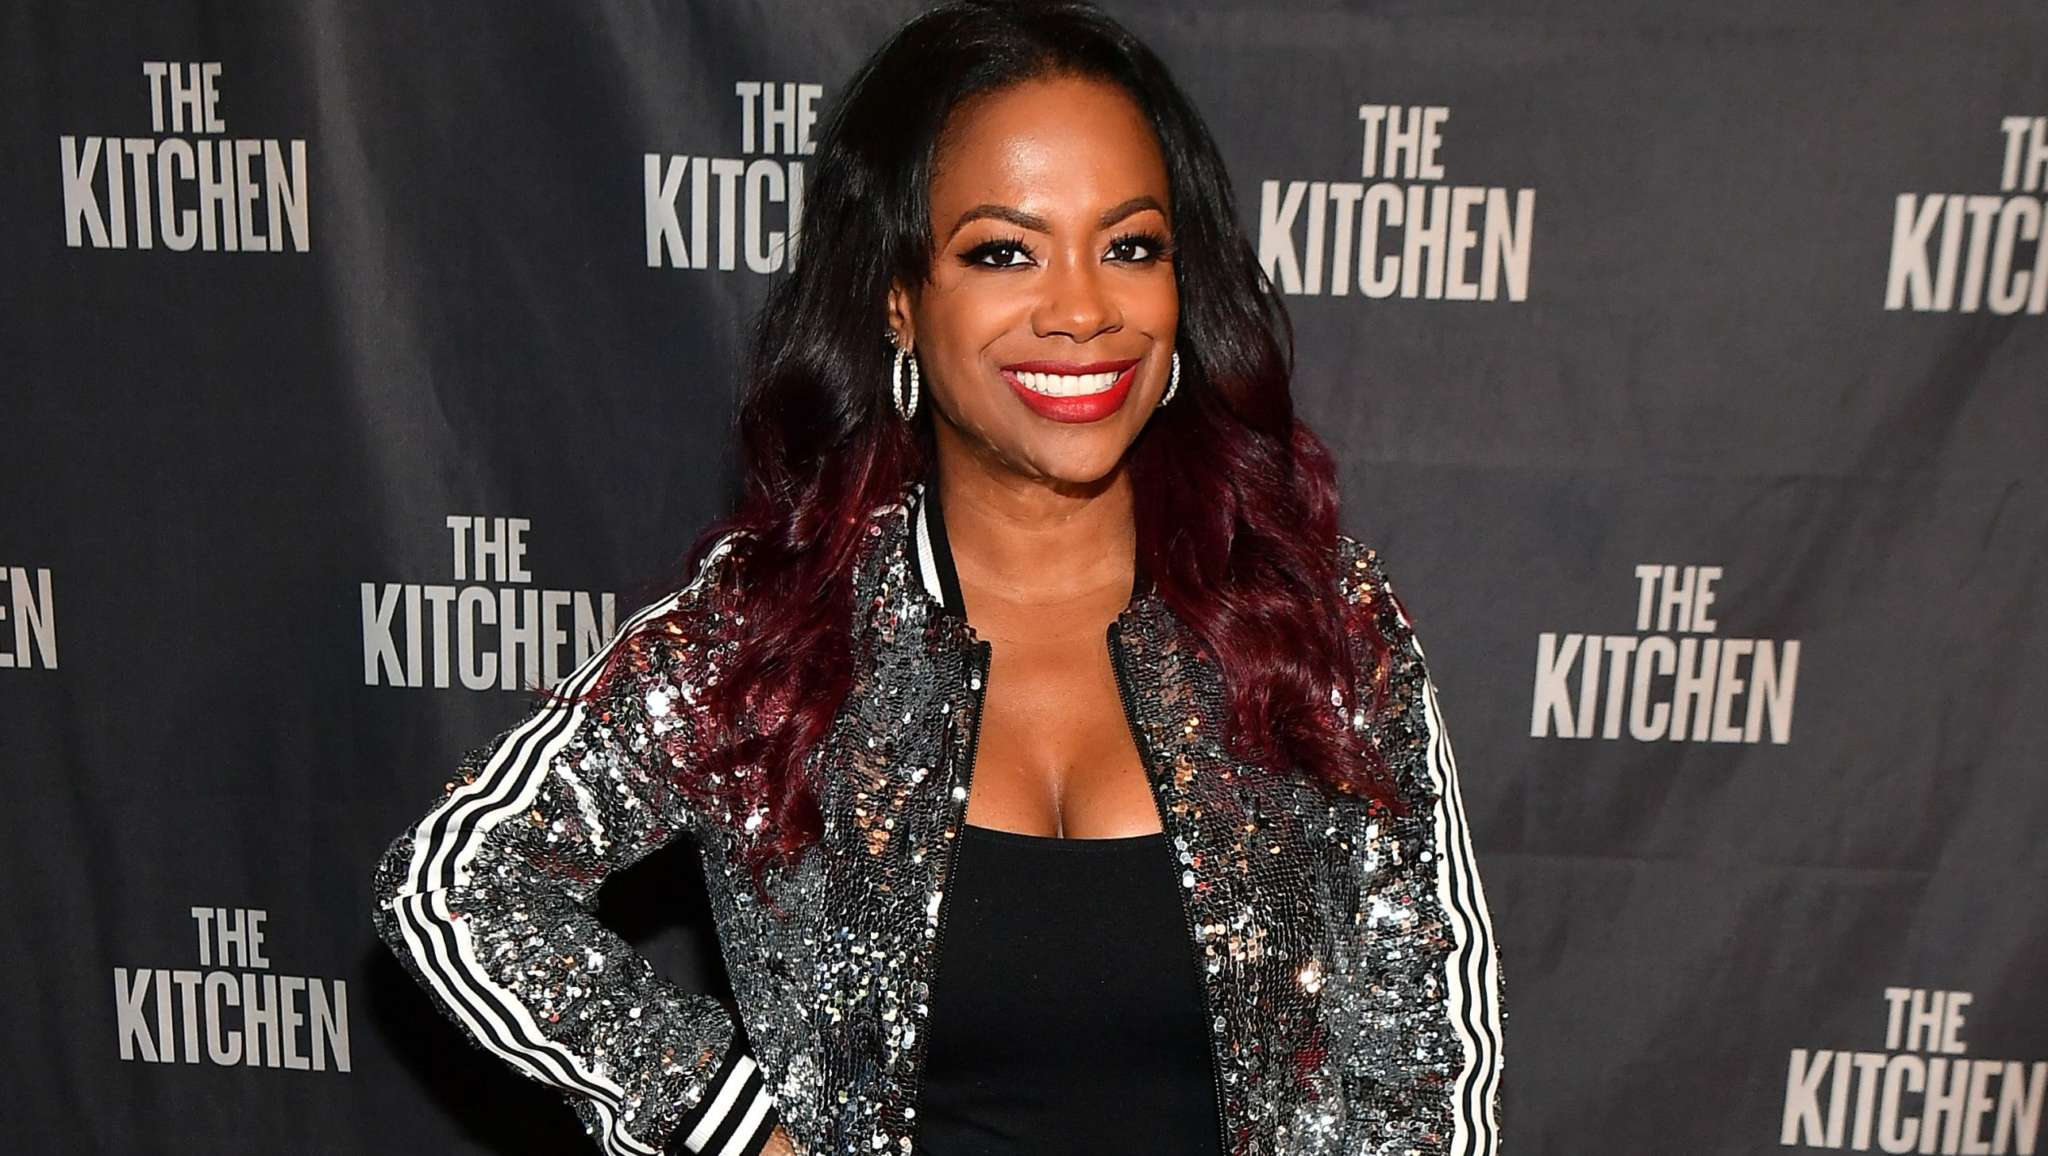 Kandi Burruss Praises Her Friend And Business Partner With An Emotional Message